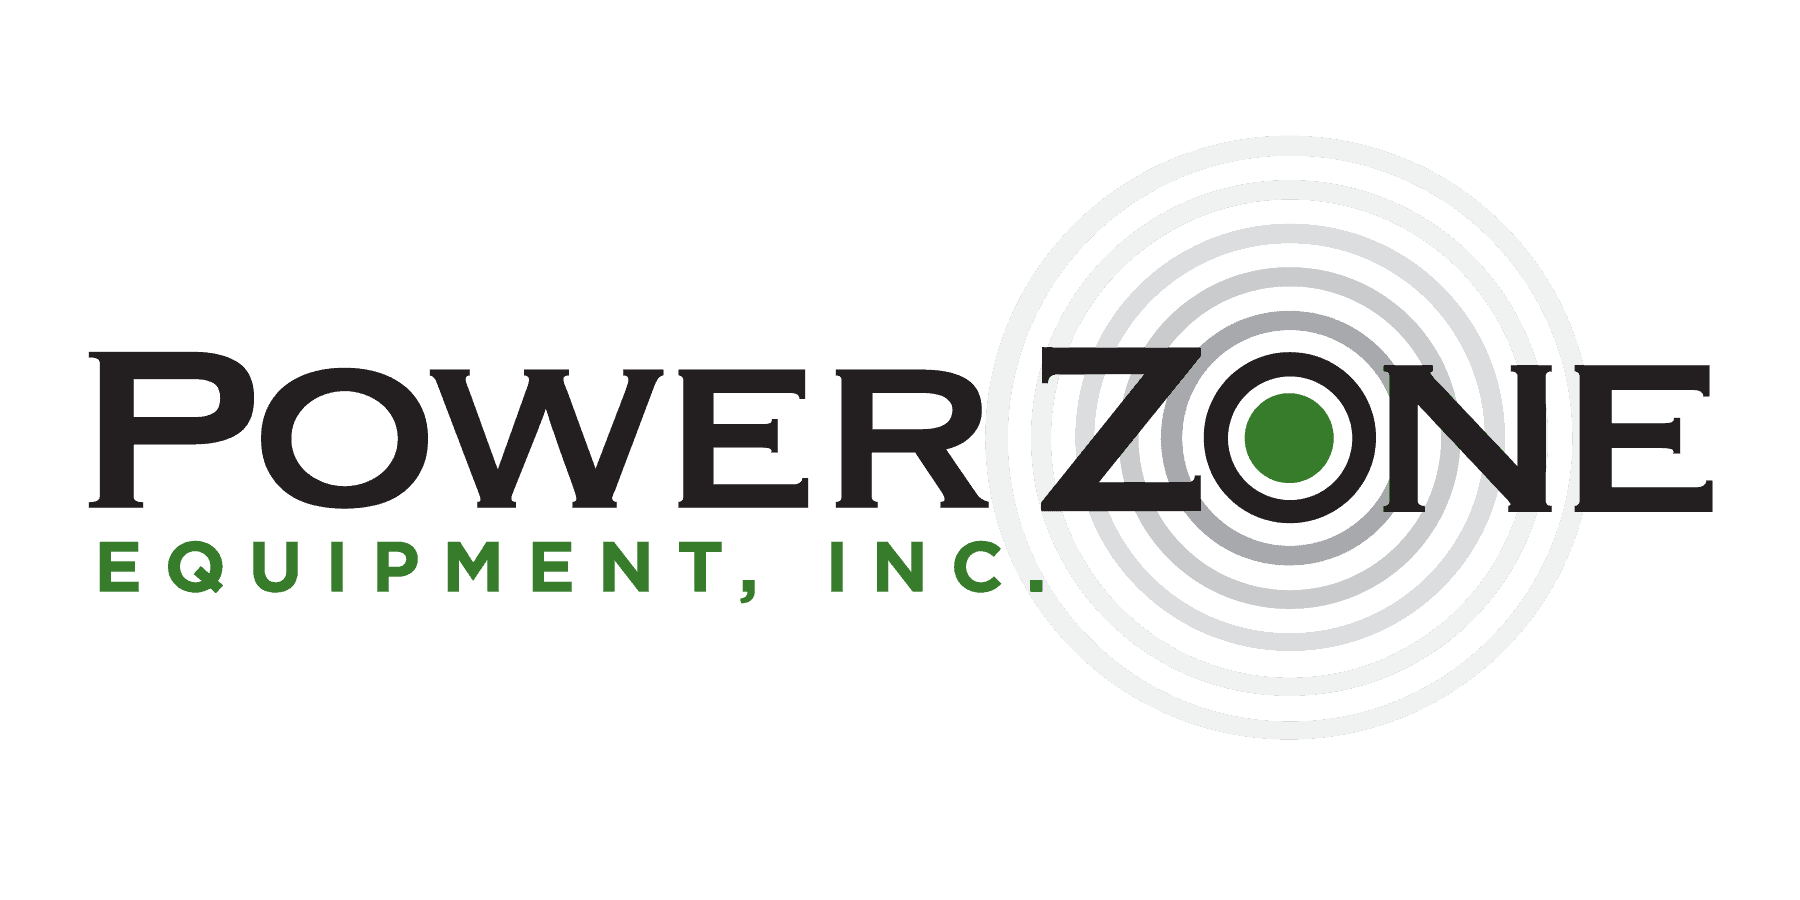 Power Zone Equipment